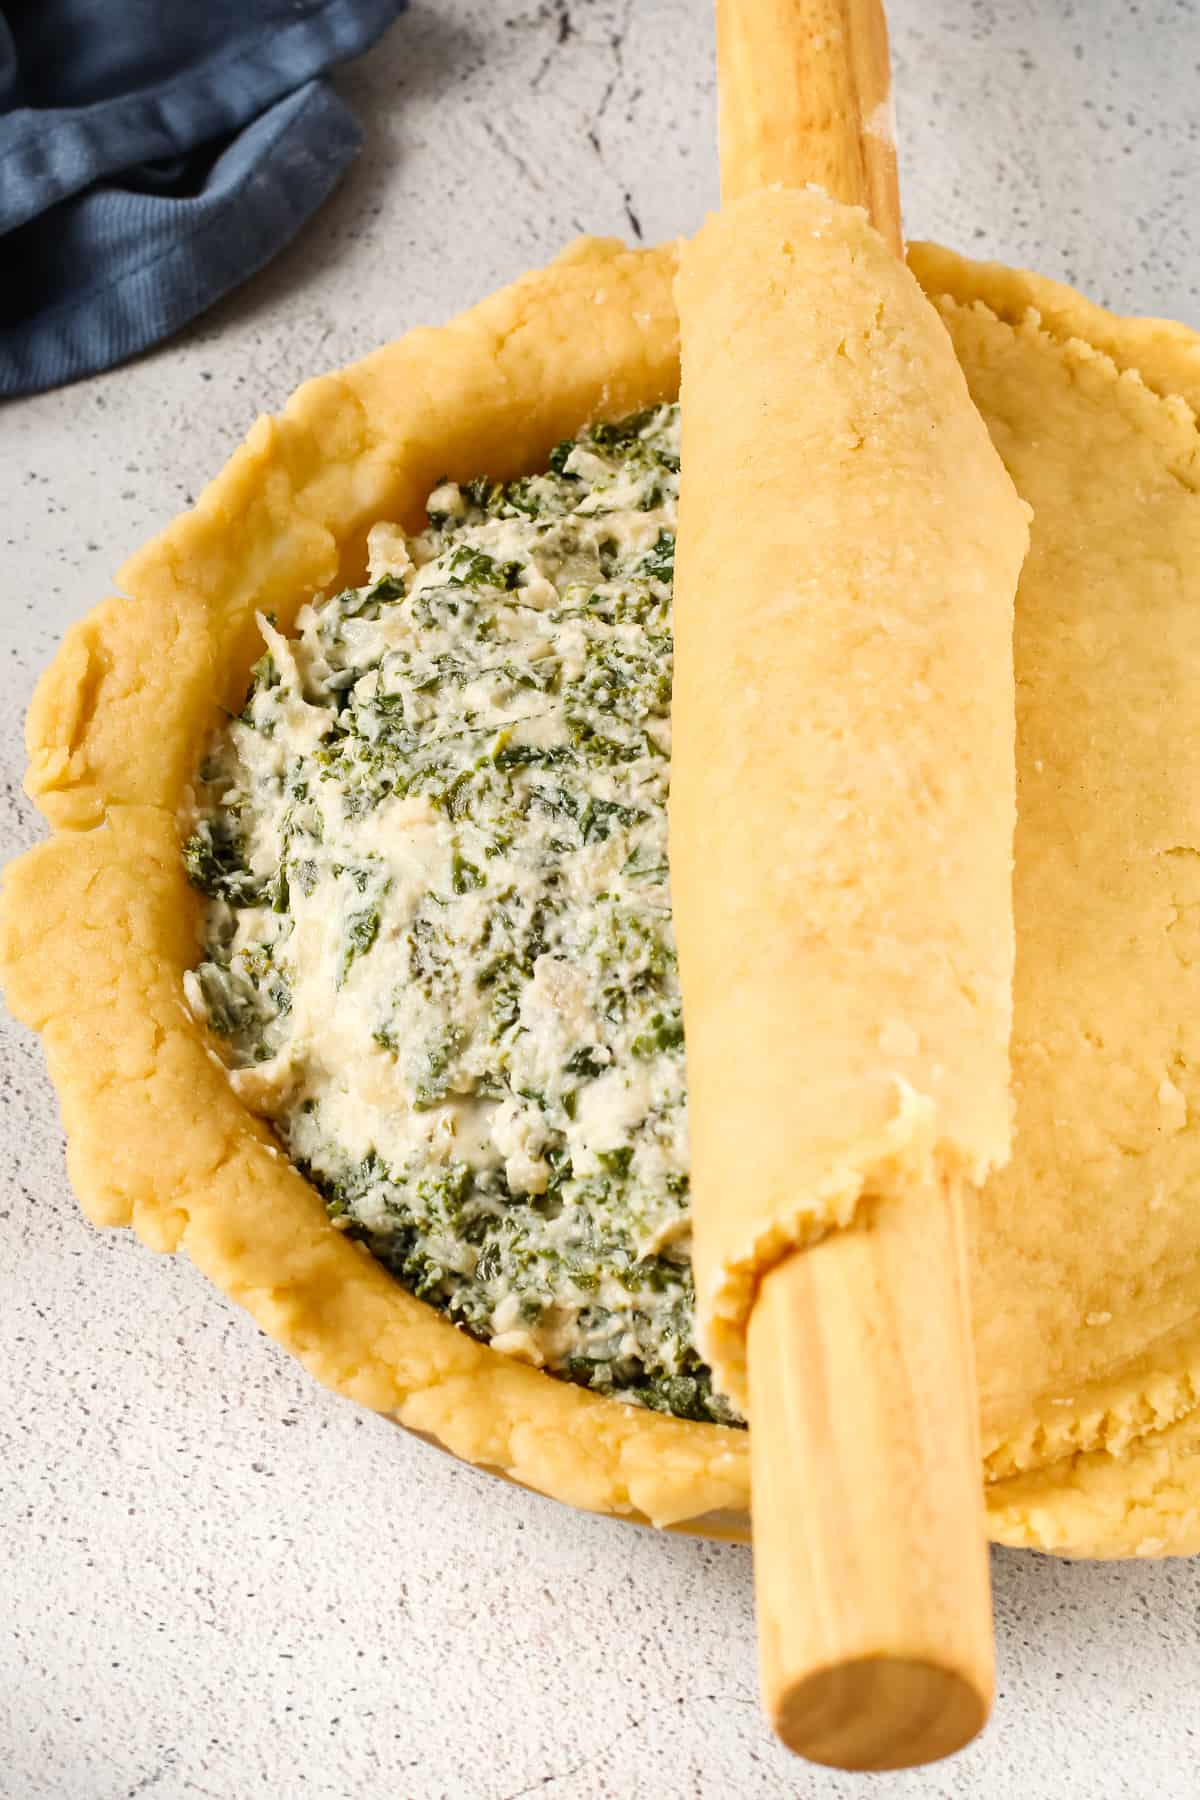 Kale pie filling with the olive oil pie dough rolled out